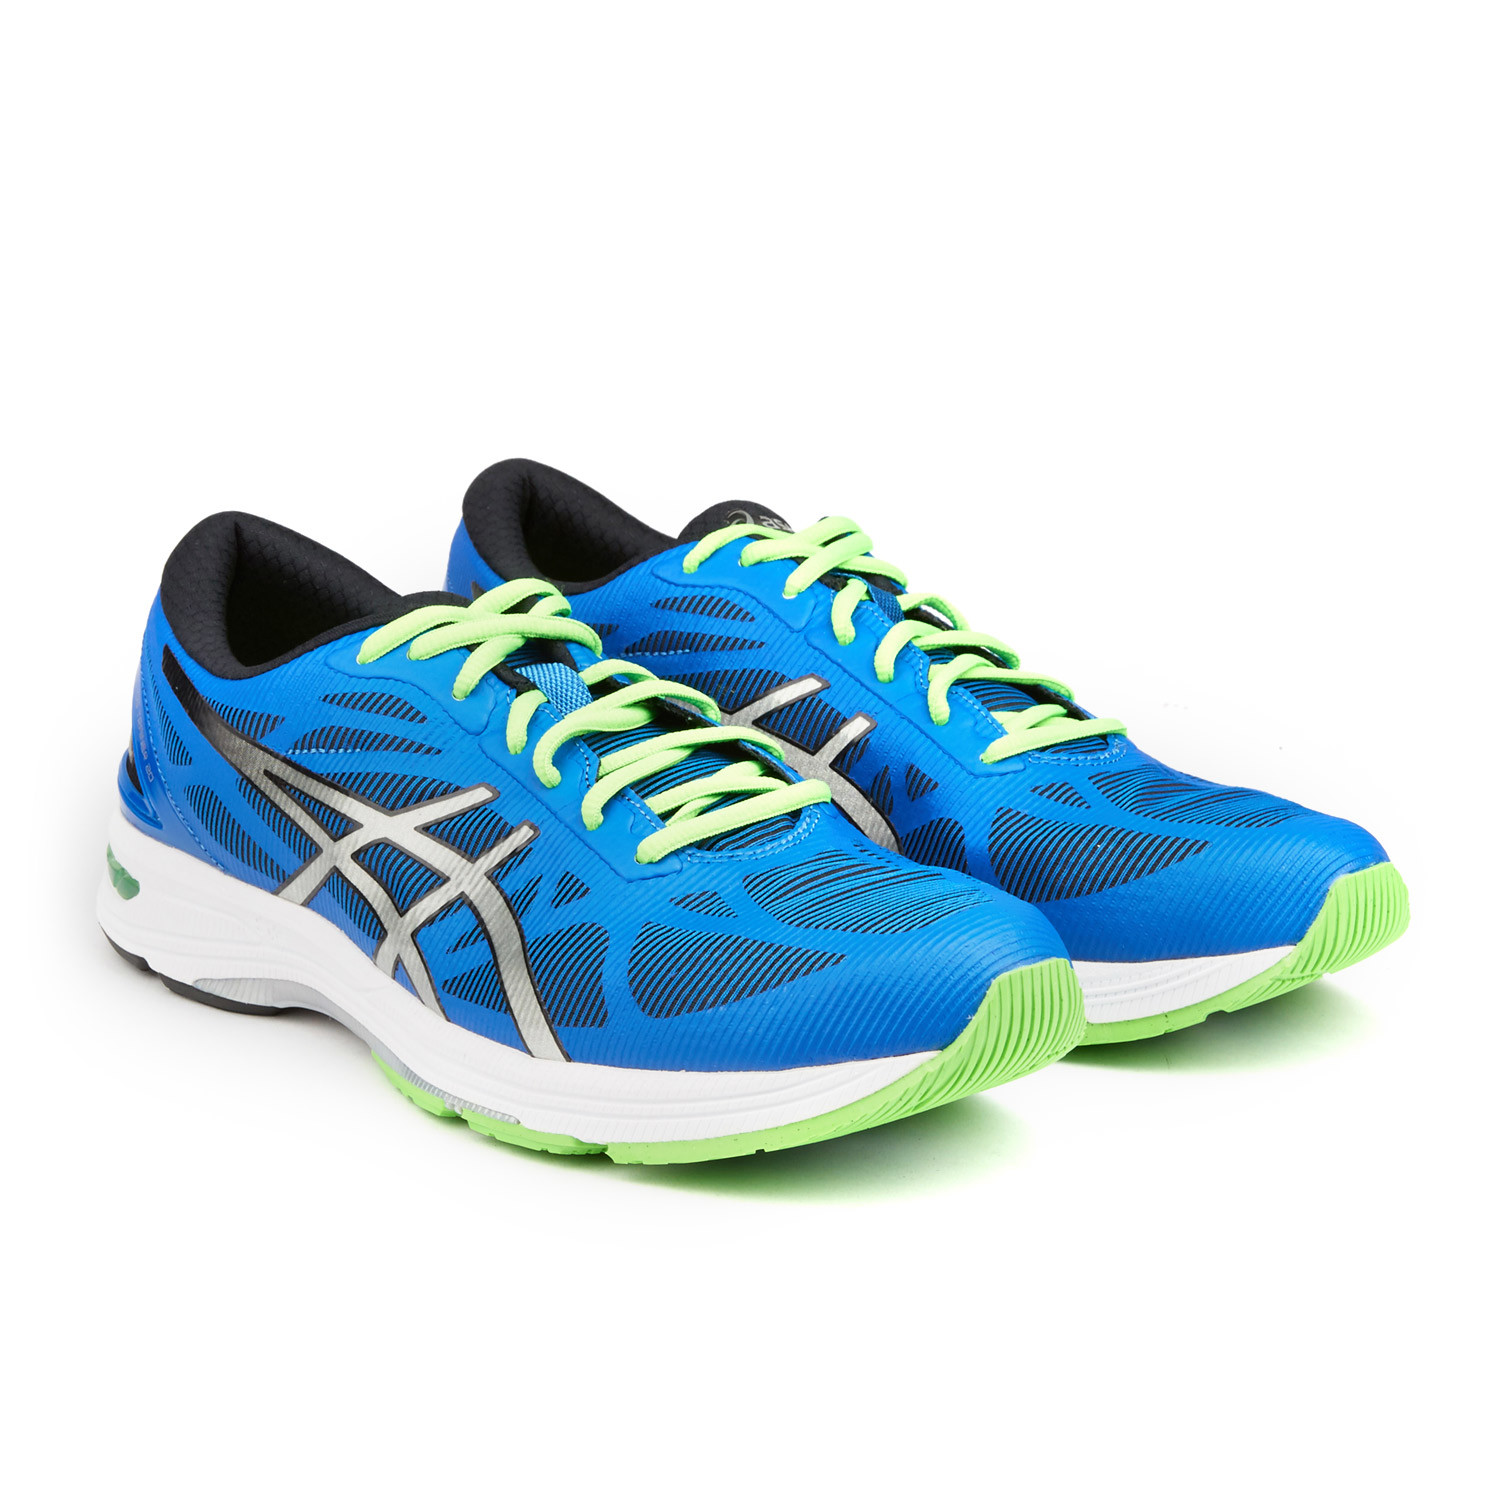 buy popular 5a329 75af5 Asics // Gel-DS Trainer 20 // Blue + Silver + Black (US: 11 ...